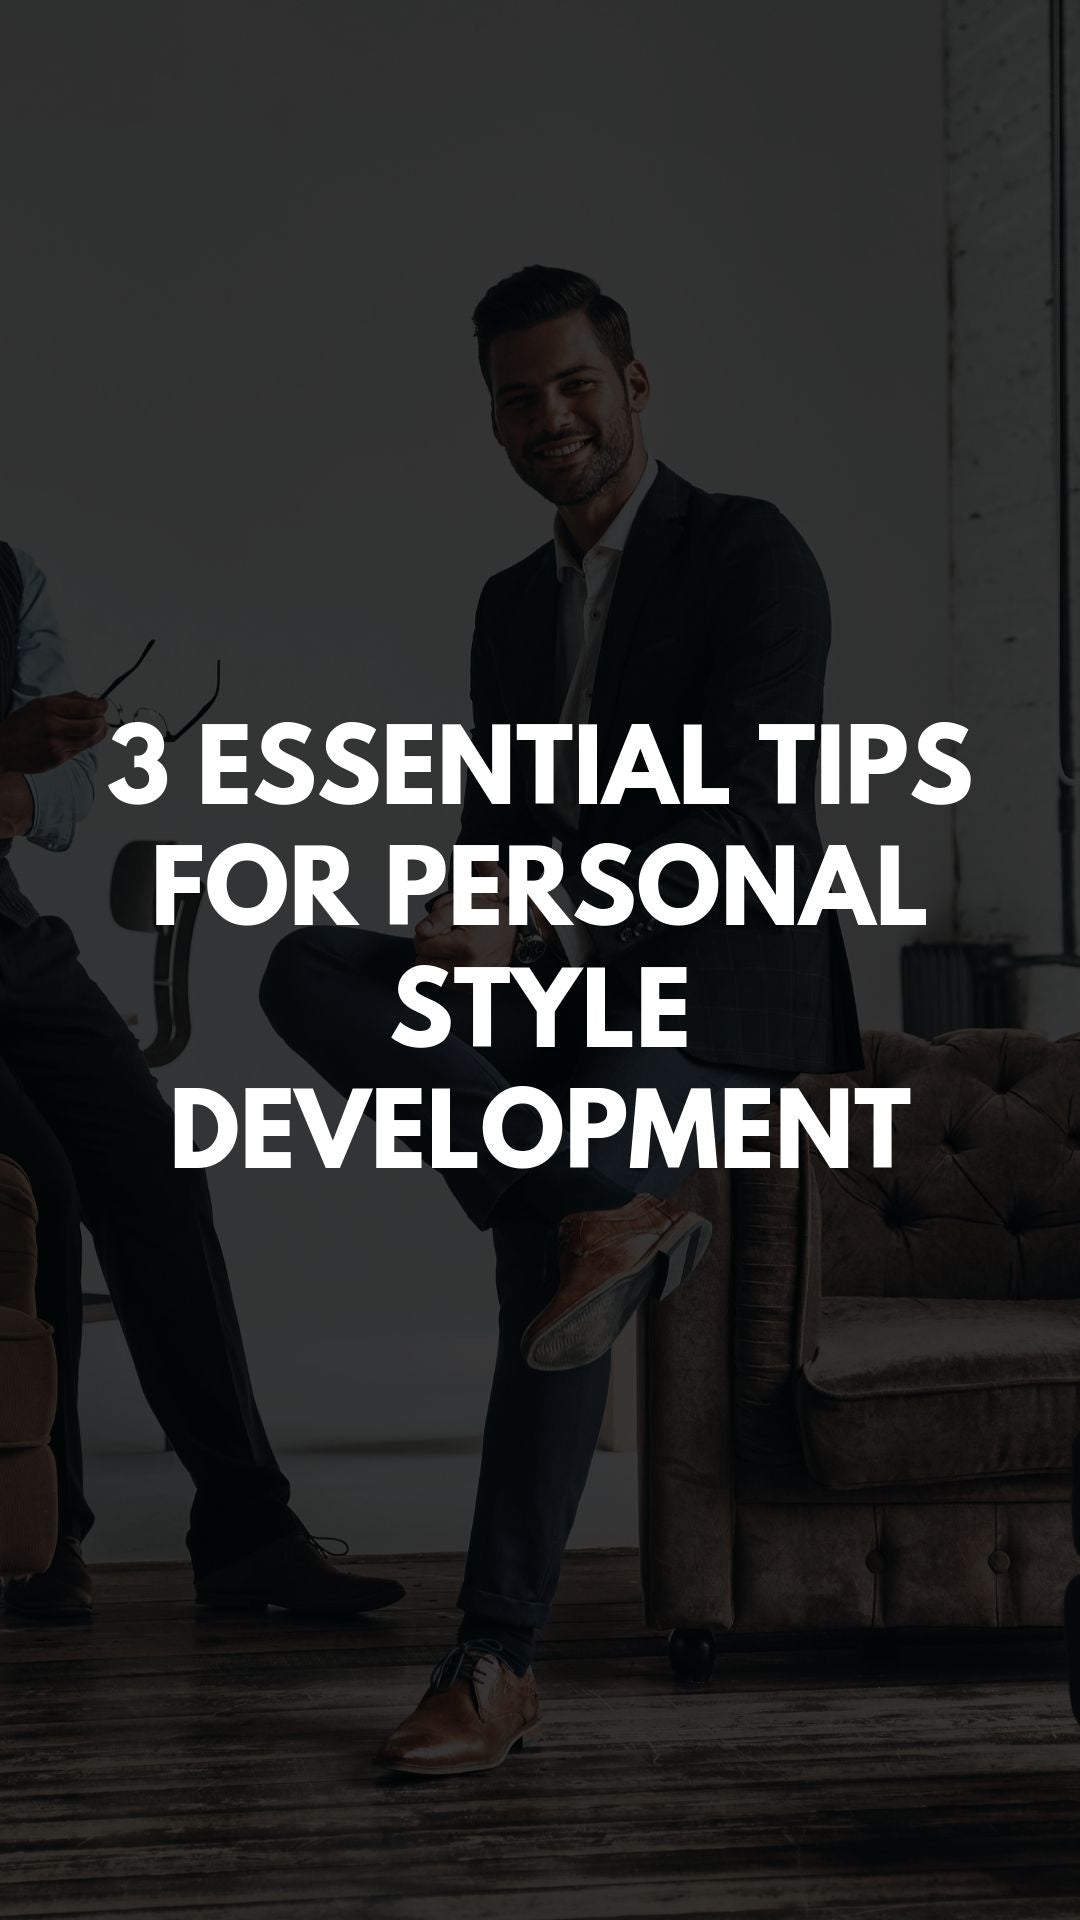 3 Essential Tips for Personal Style Development